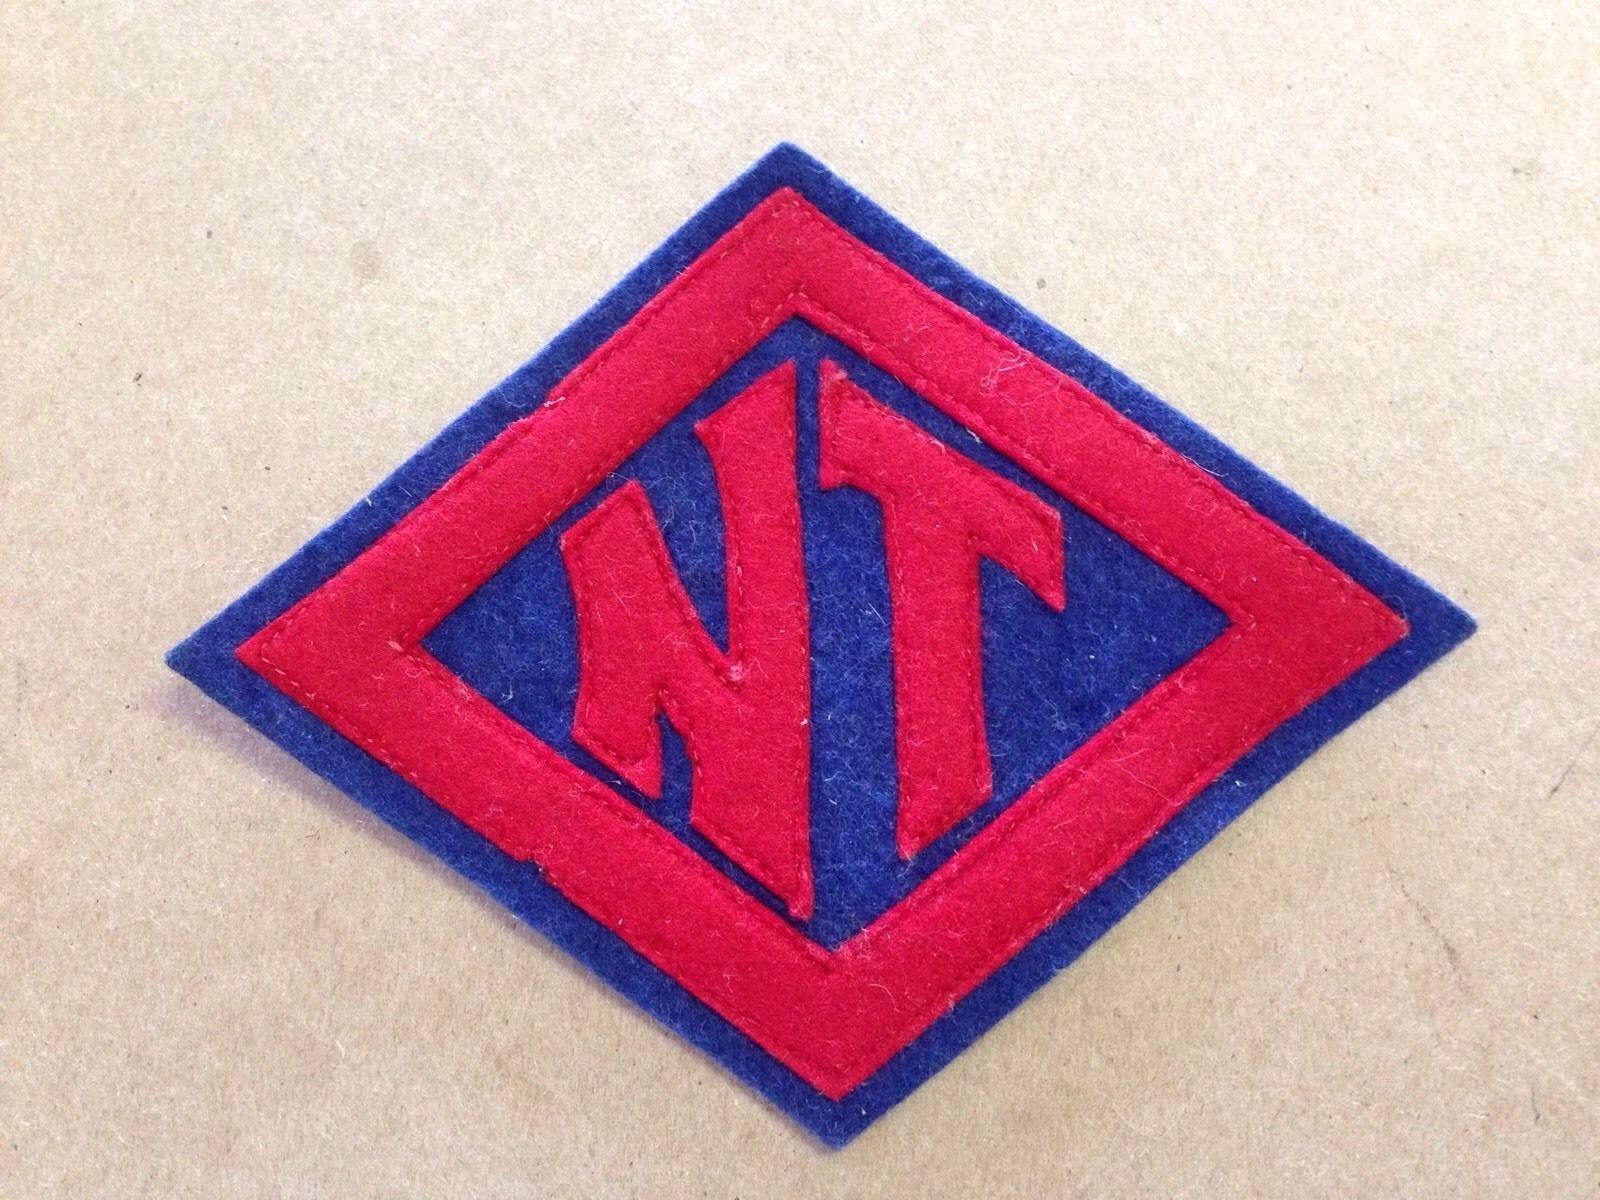 NT red and blue felt patch.jpg